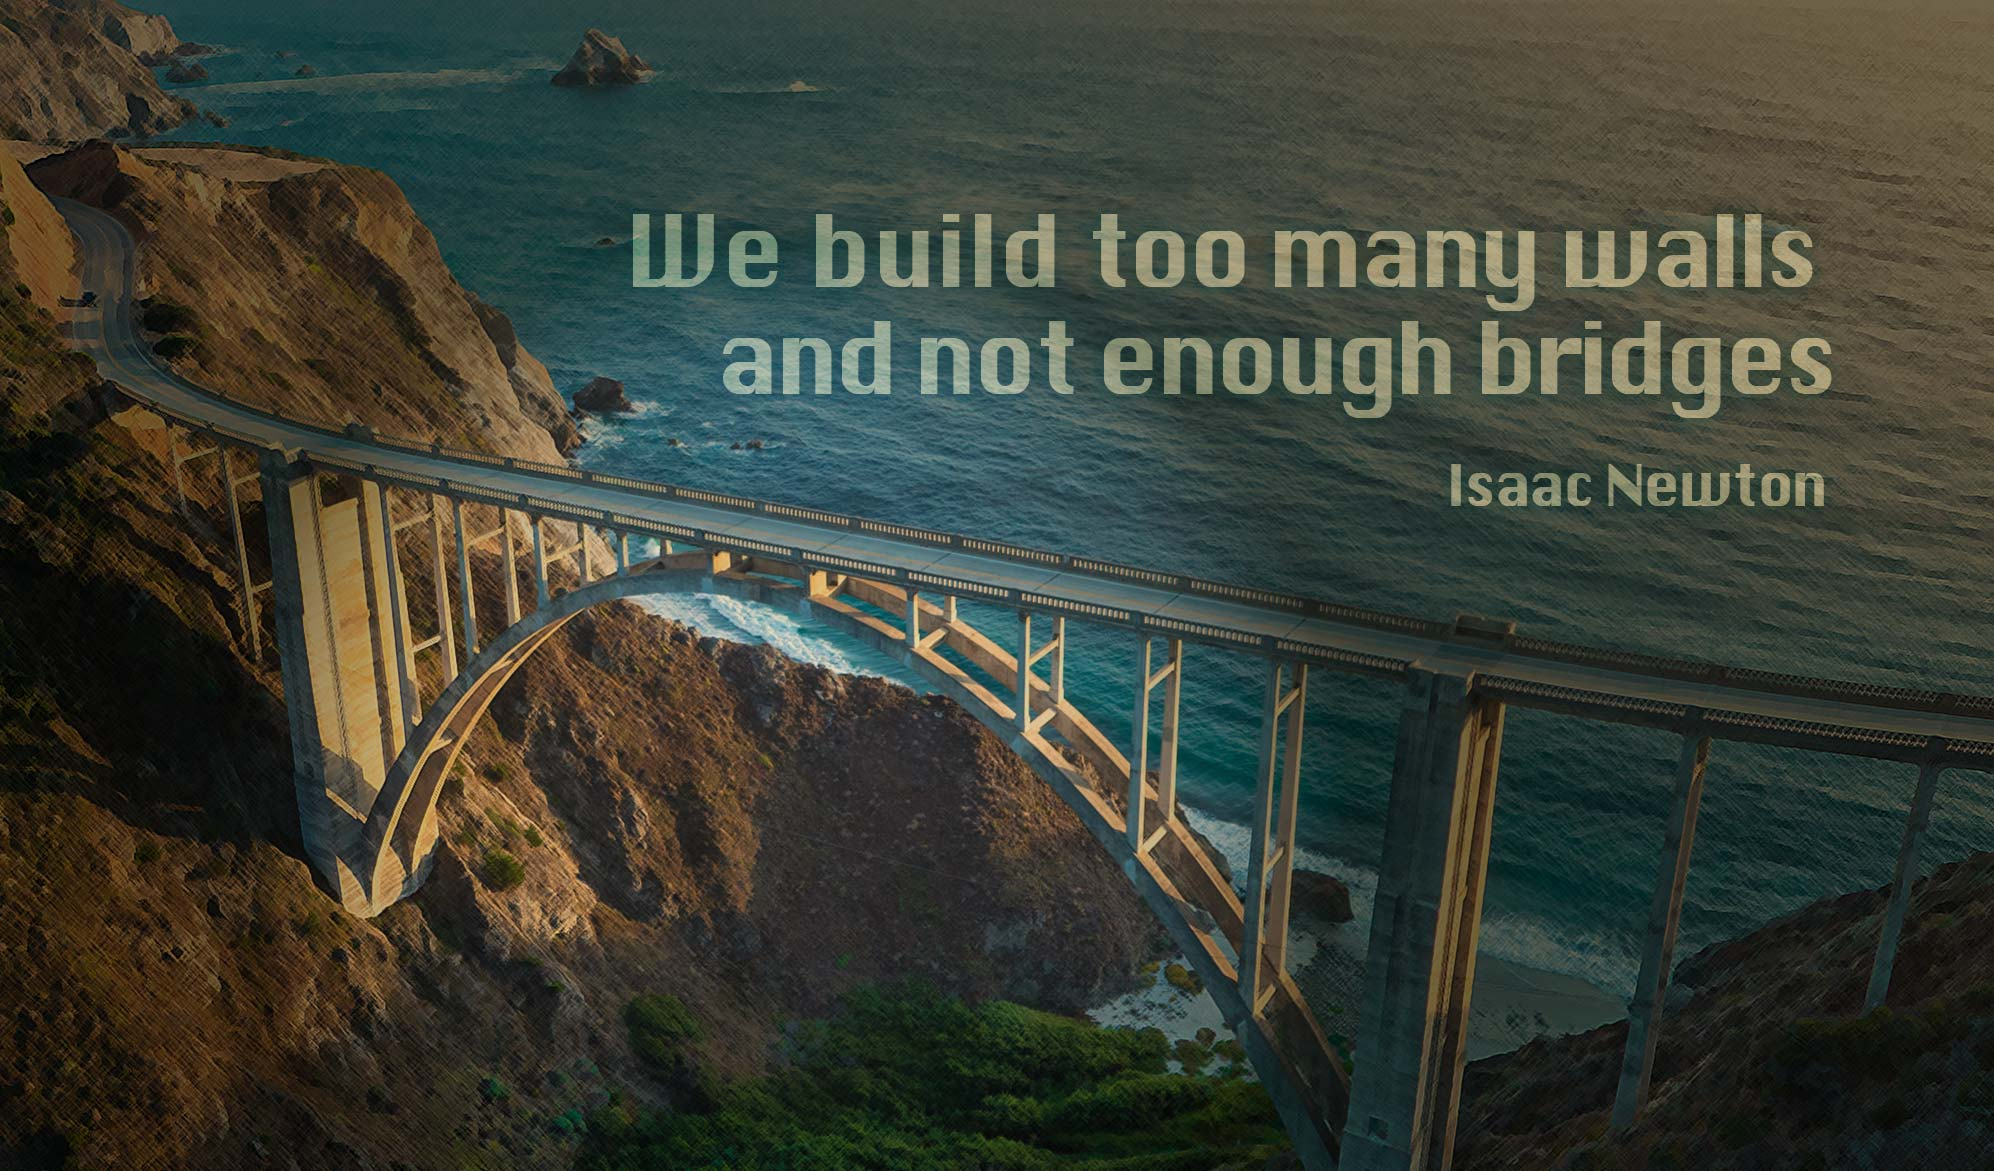 inspirational quote image: aerial view of the famous Bixby Creek Bridge in Del Sur, CA